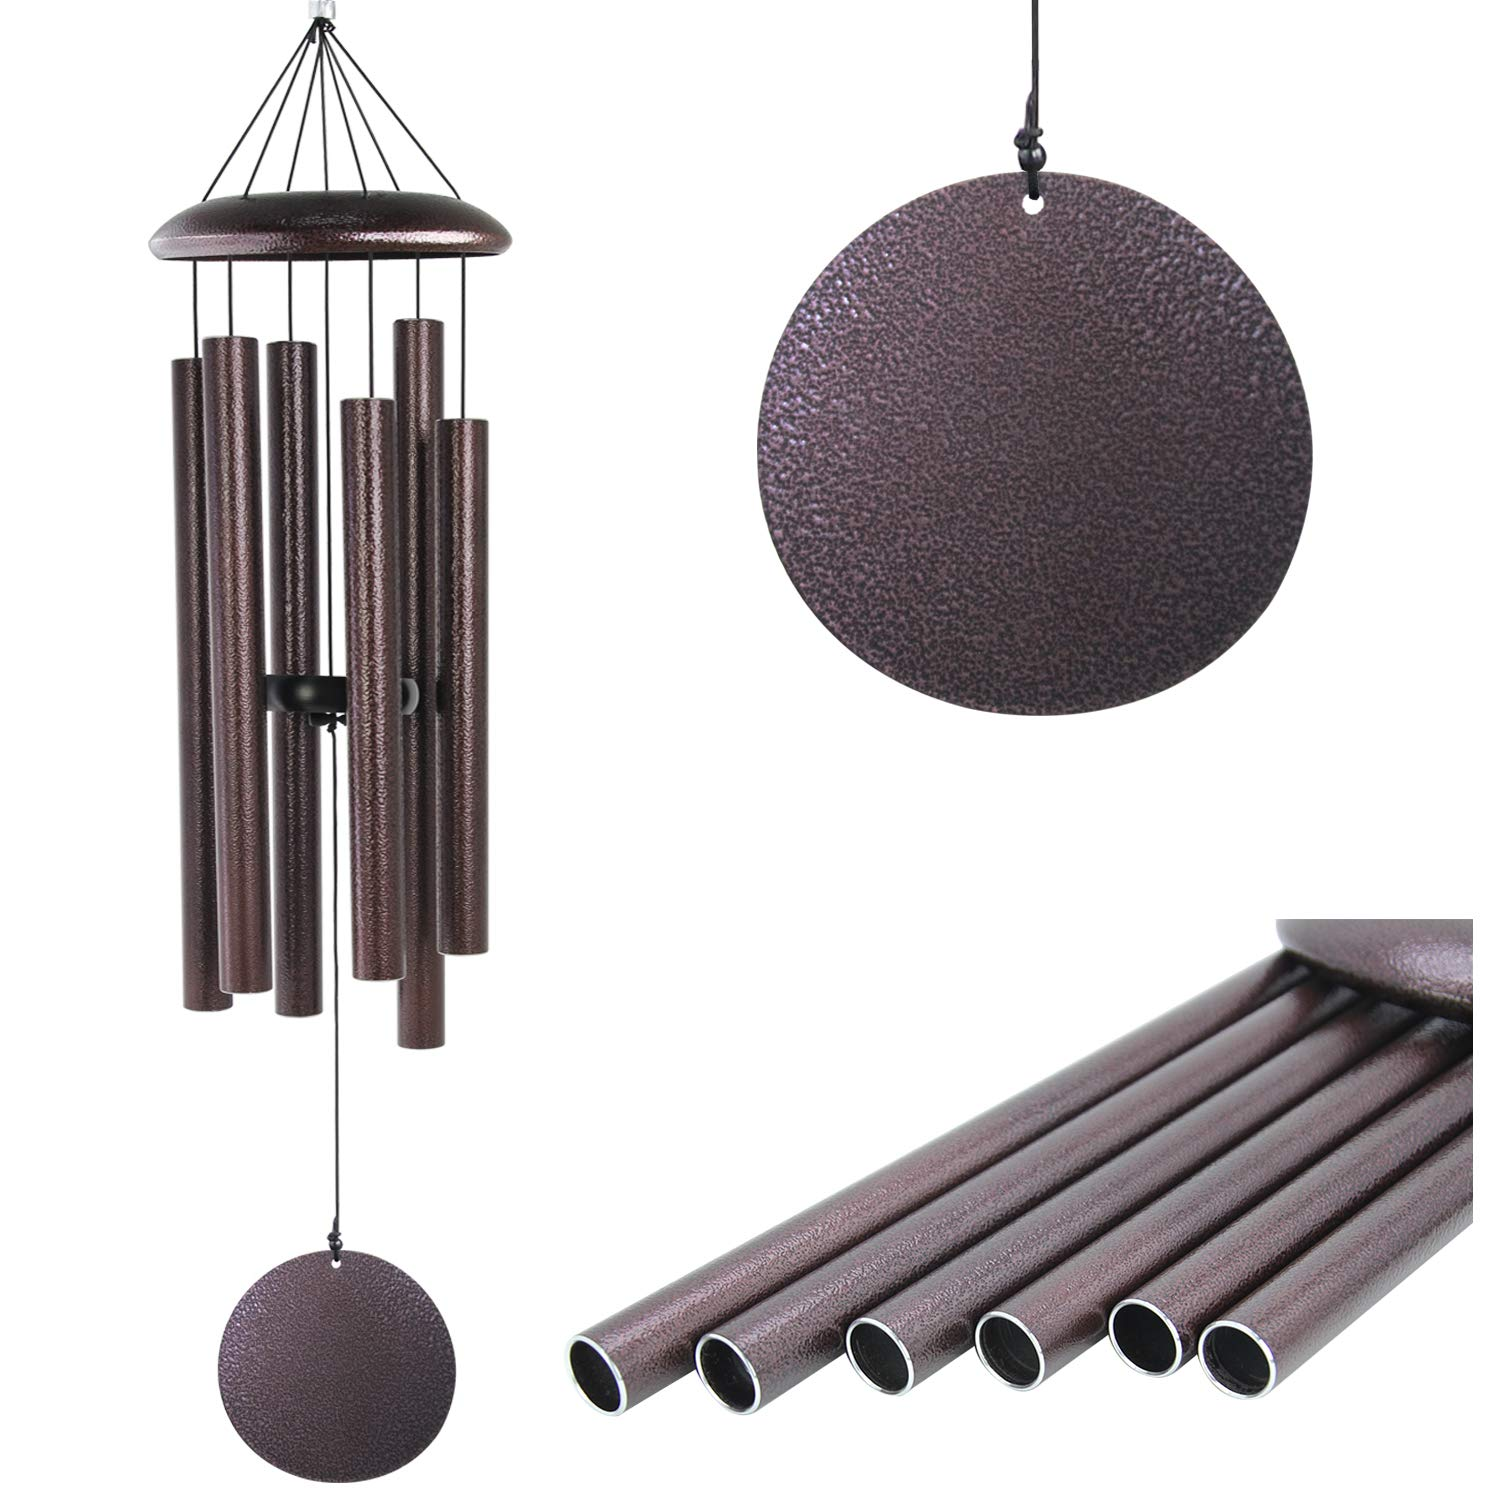 Large Wind Chimes Outdoor Deep Tone,Sympathy Wind Chimes Amazing Grace Outdoor with 6 Metal Tuned Tubes,Memorial Wind Chimes Personalized for Garden Balcony Patio and Home Decor,Bronze 36'' by Astarin